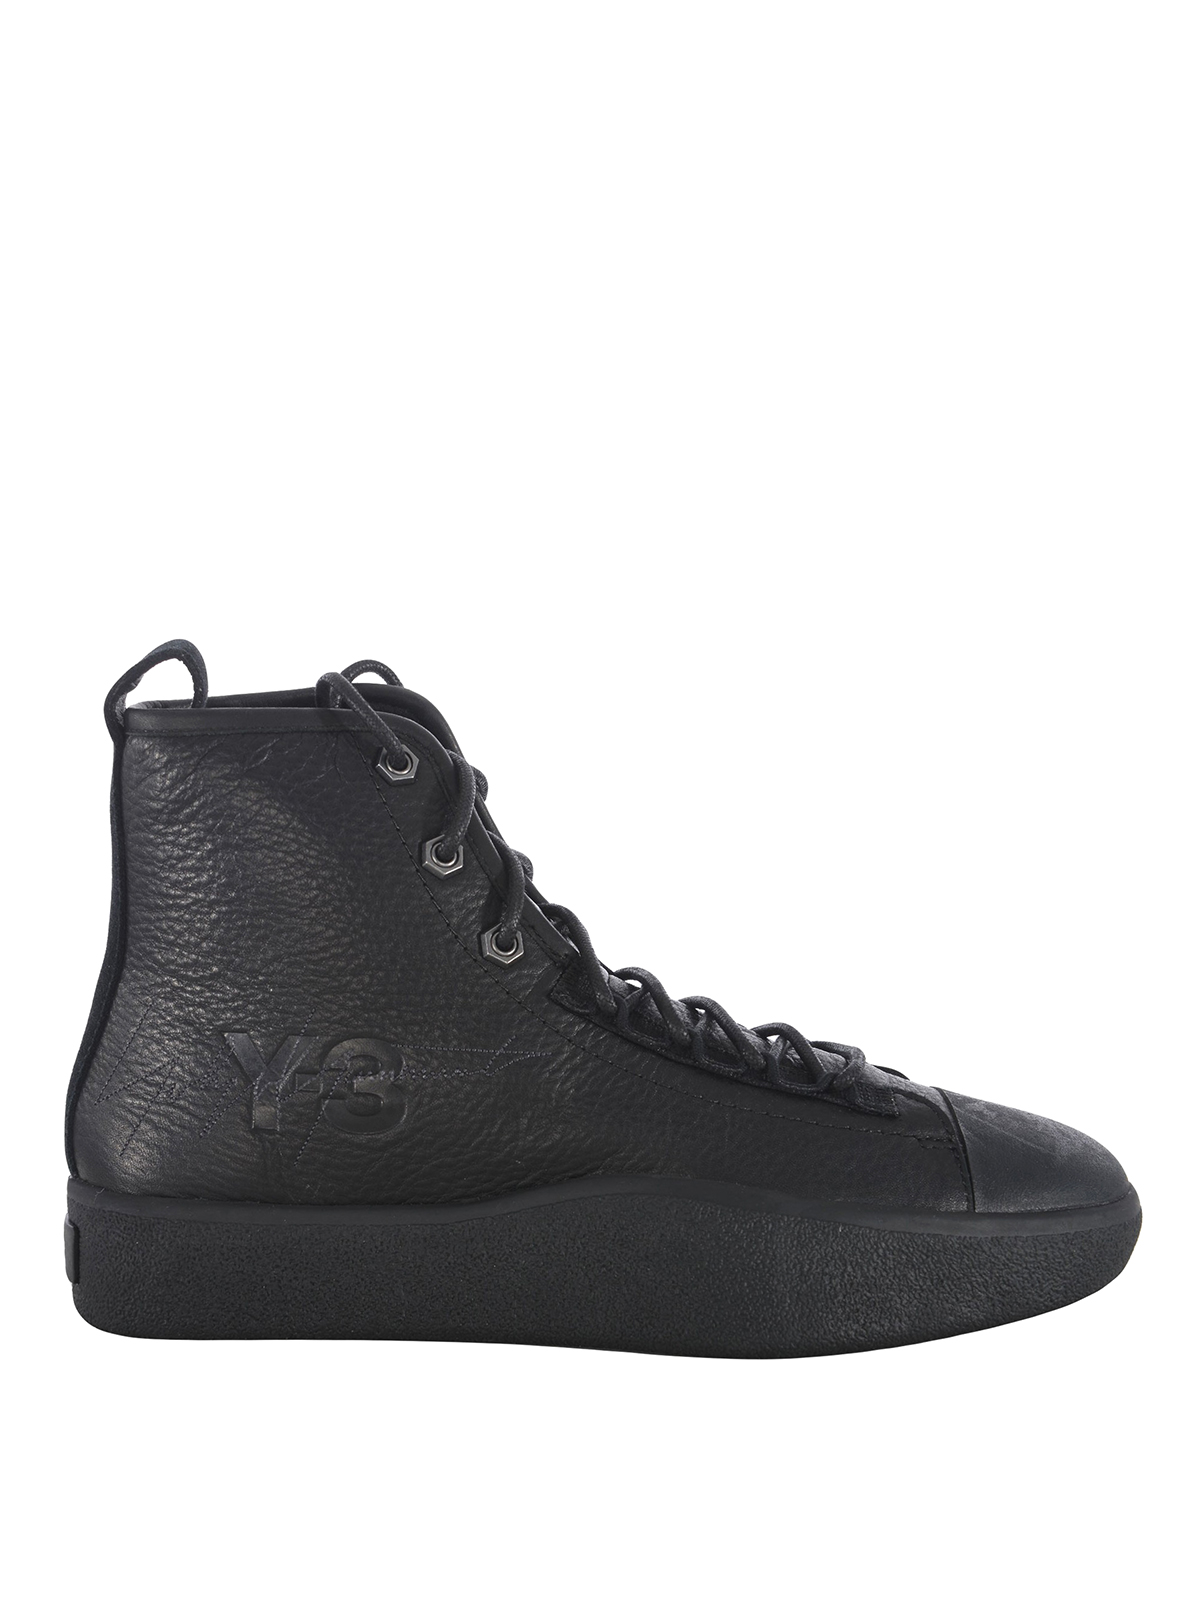 separation shoes c93fc 880ae ADIDAS Y-3  sneakers - Sneaker alte in pelle con punta in gomma